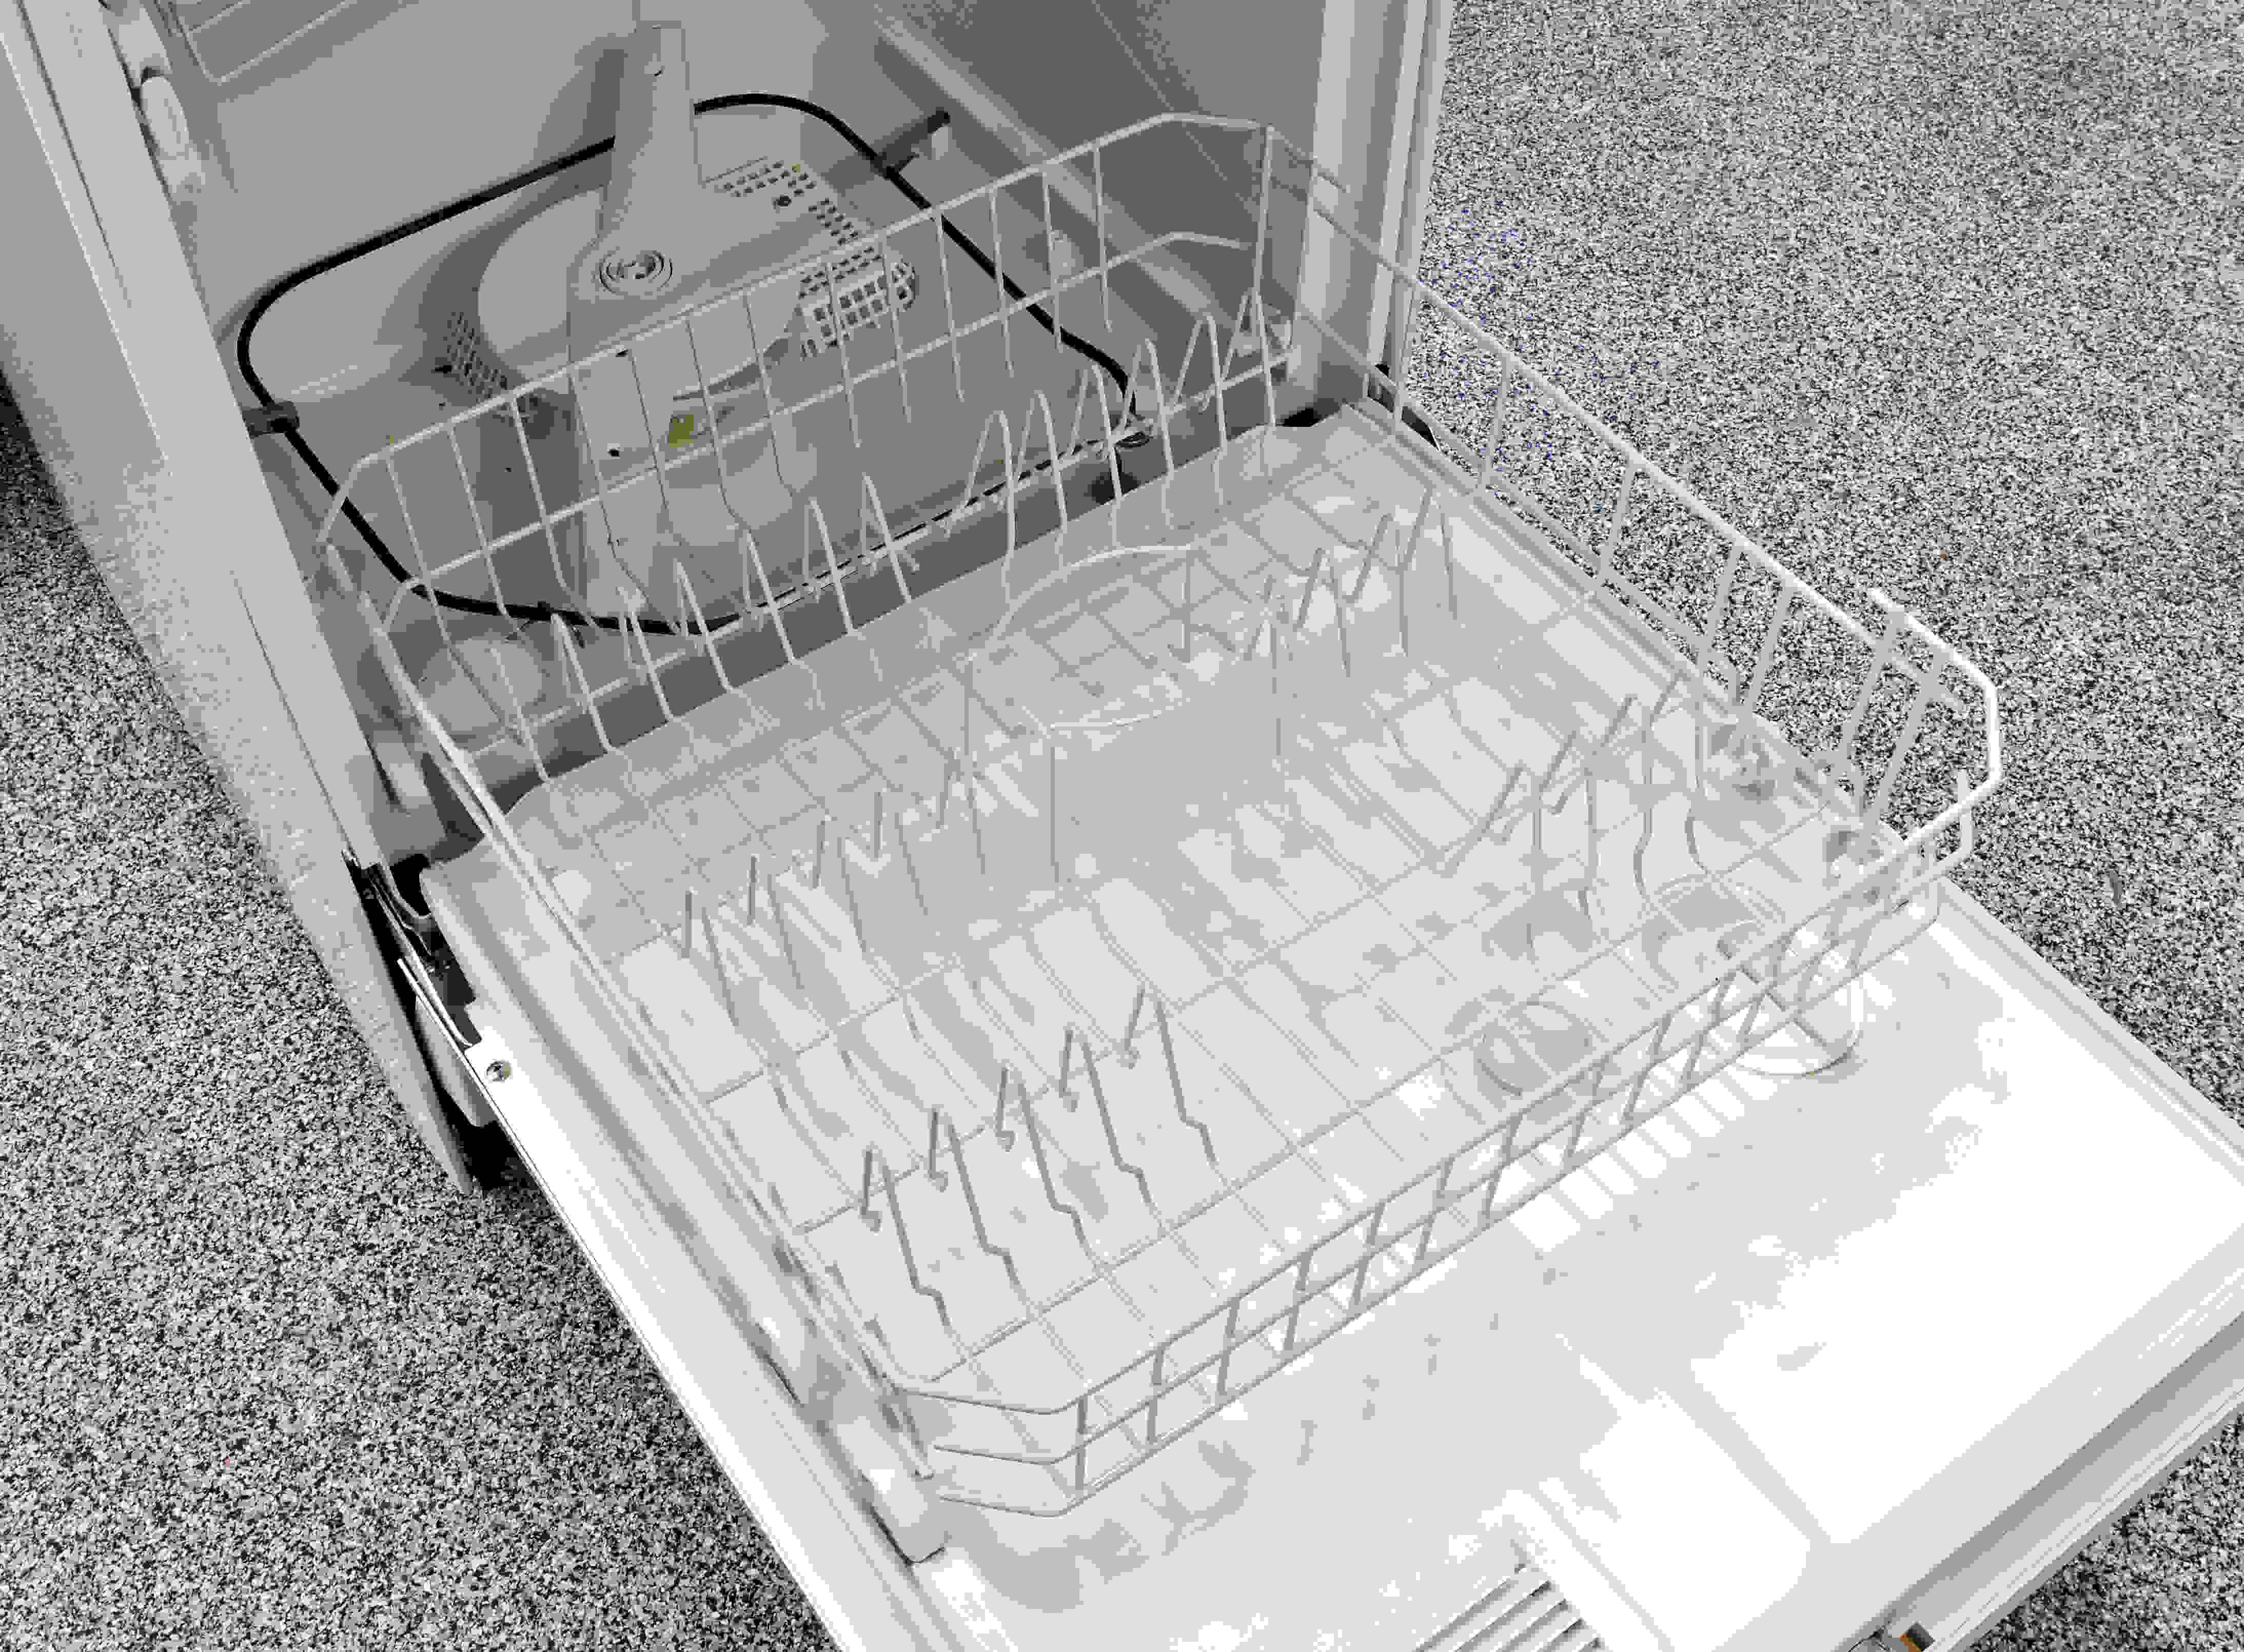 The GE GSC3500DWW's cutlery basket is easy to remove if you need to make room for large pots or pans.